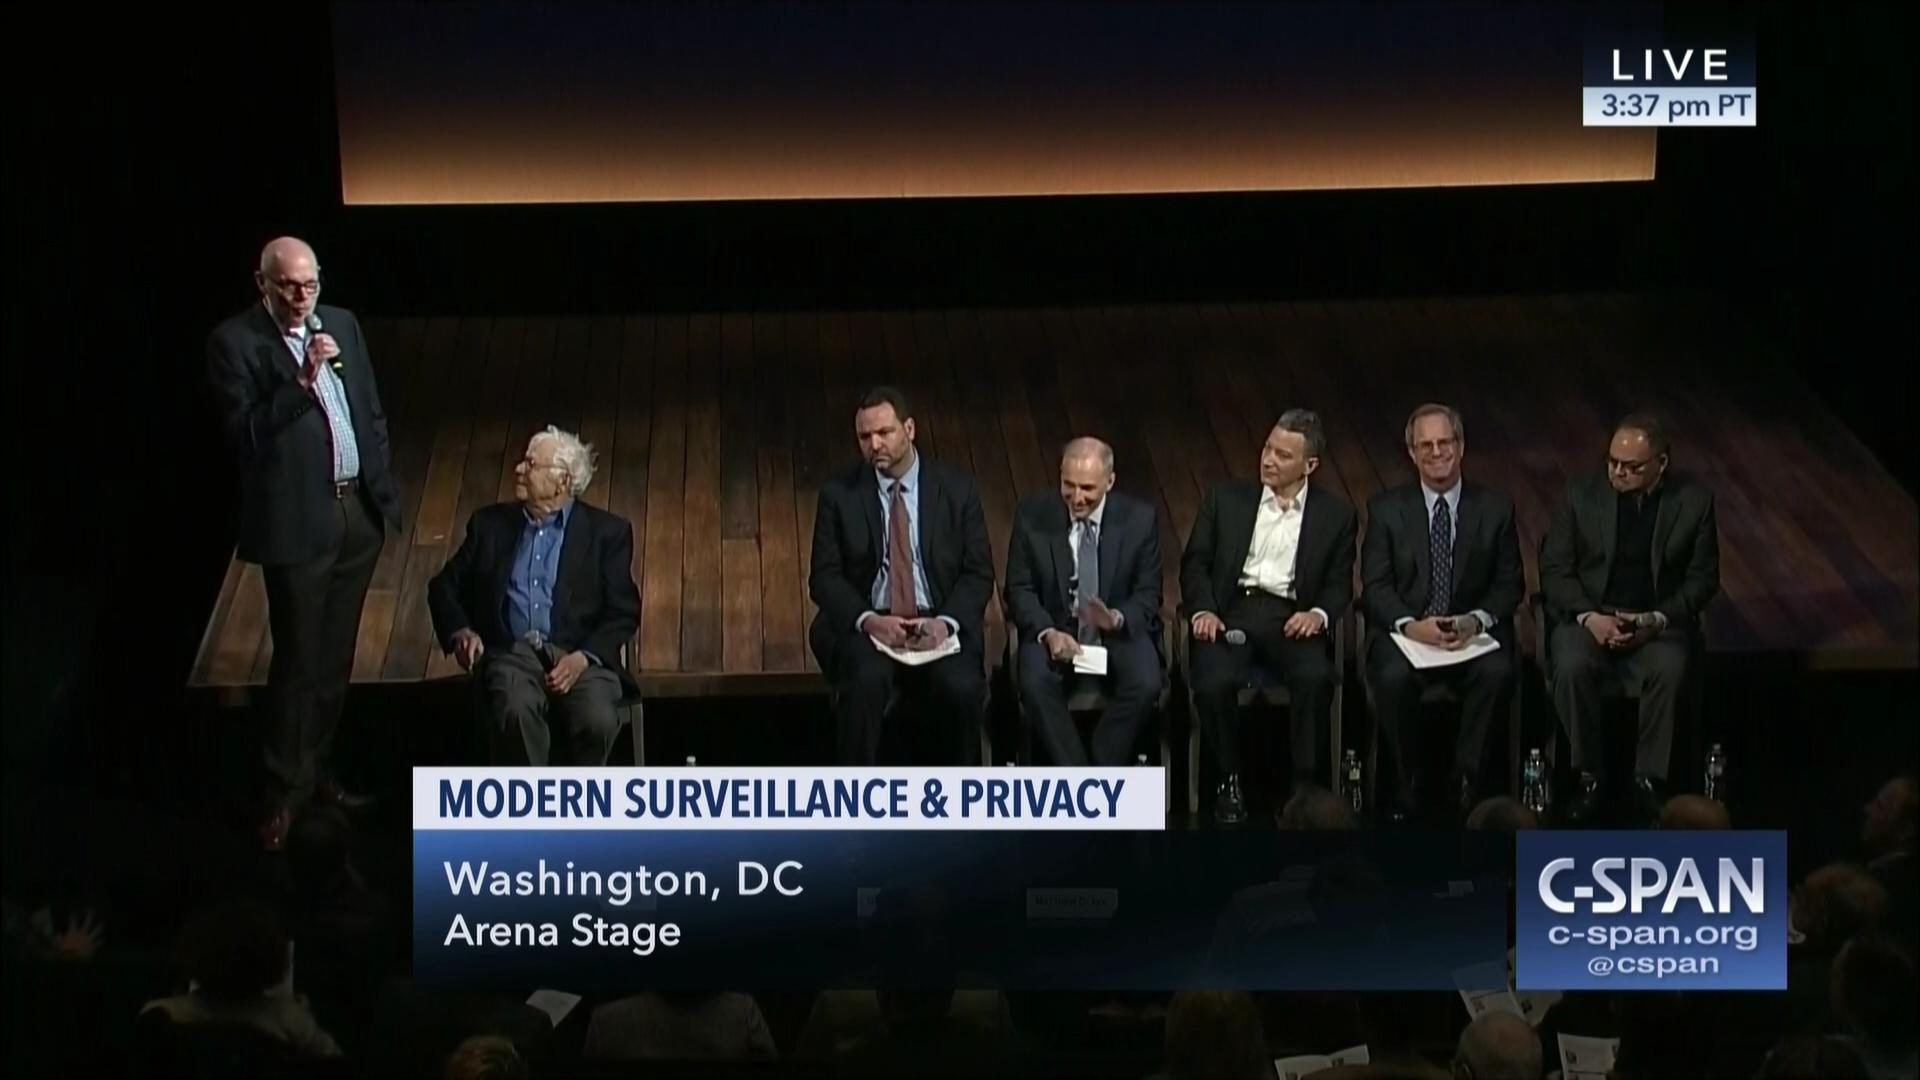 Modern Surveillance and Privacy